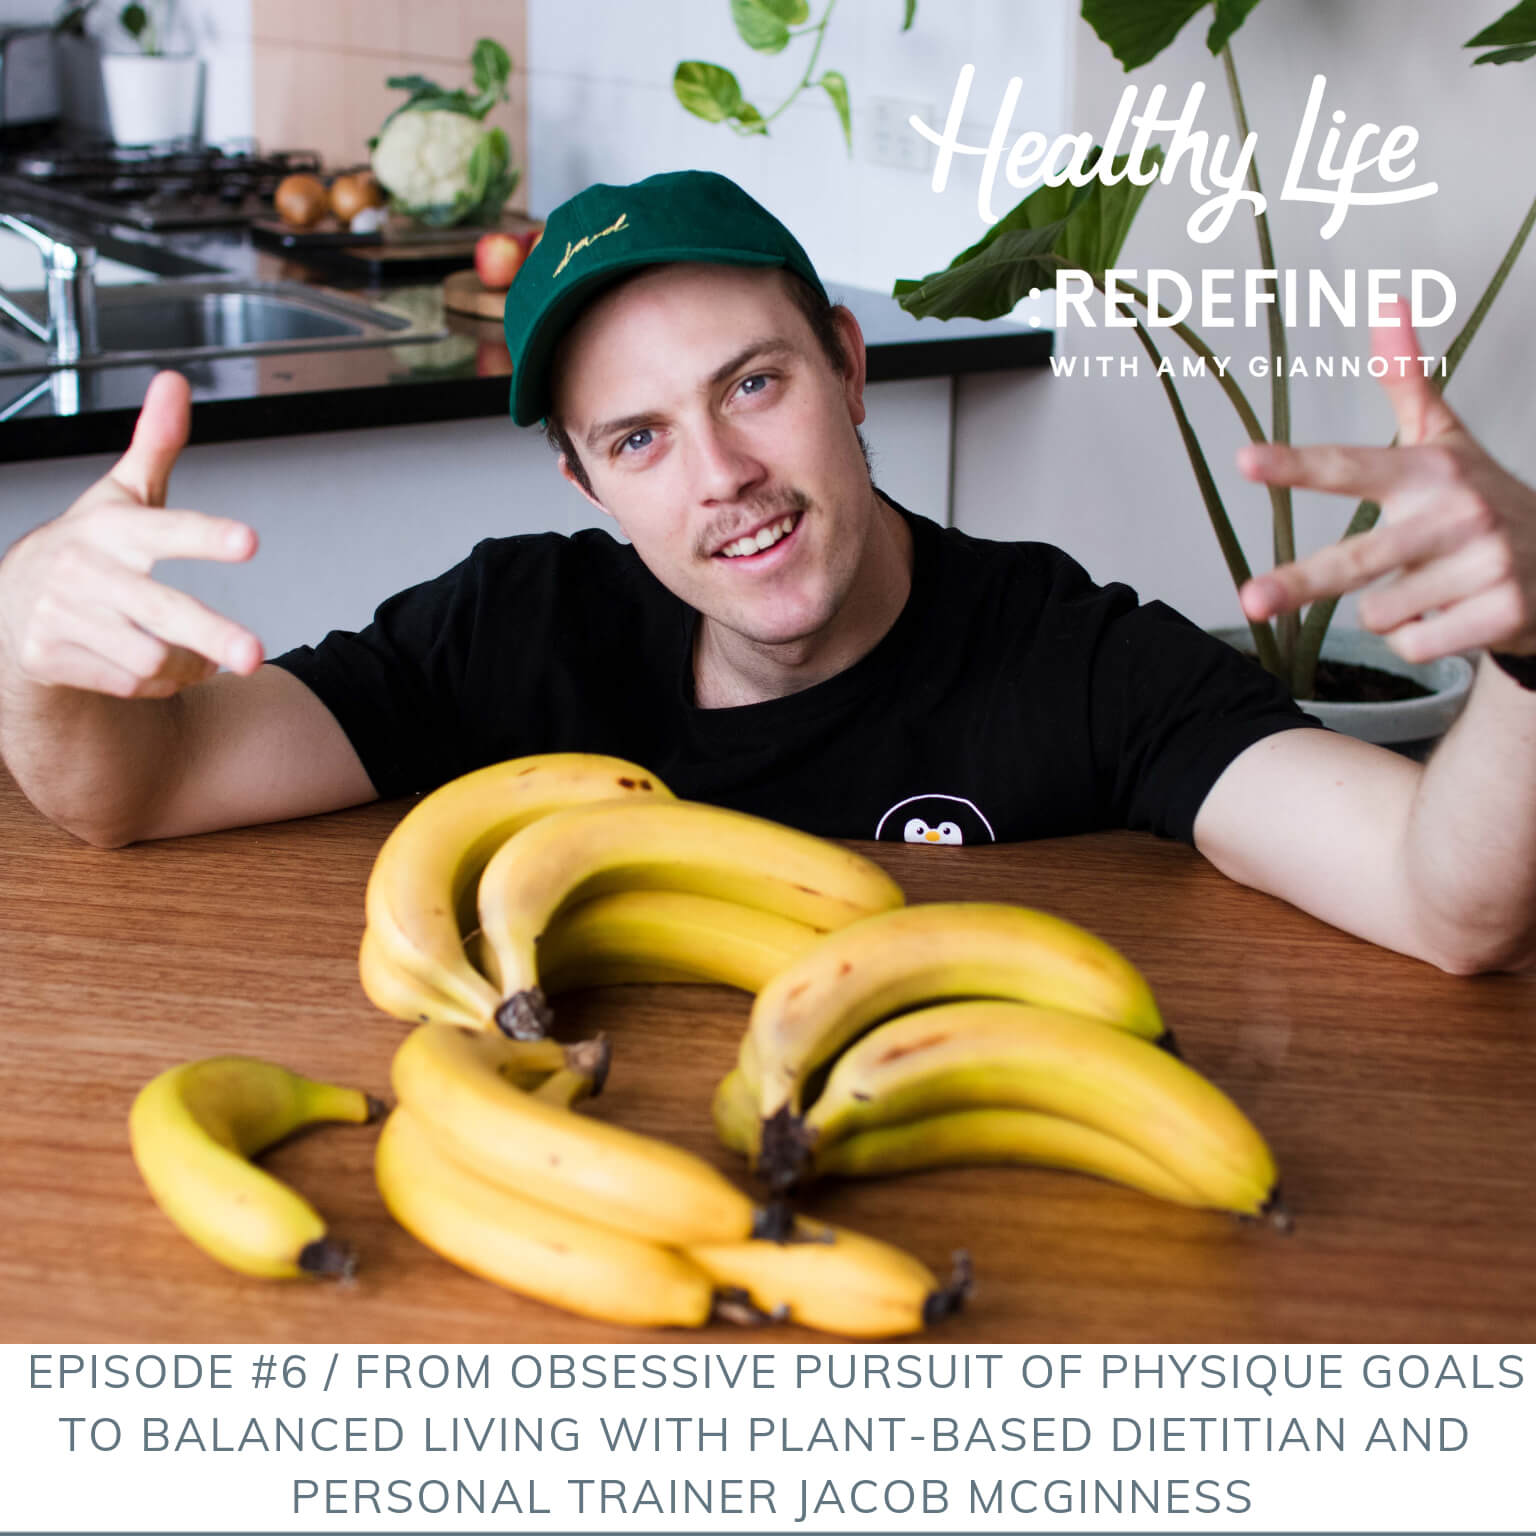 Podcast Episode 6: From Obsessive Pursuit of Physique Goals to Balanced Living with Plant Based Dietitian and Personal Trainer Jacob McGinness